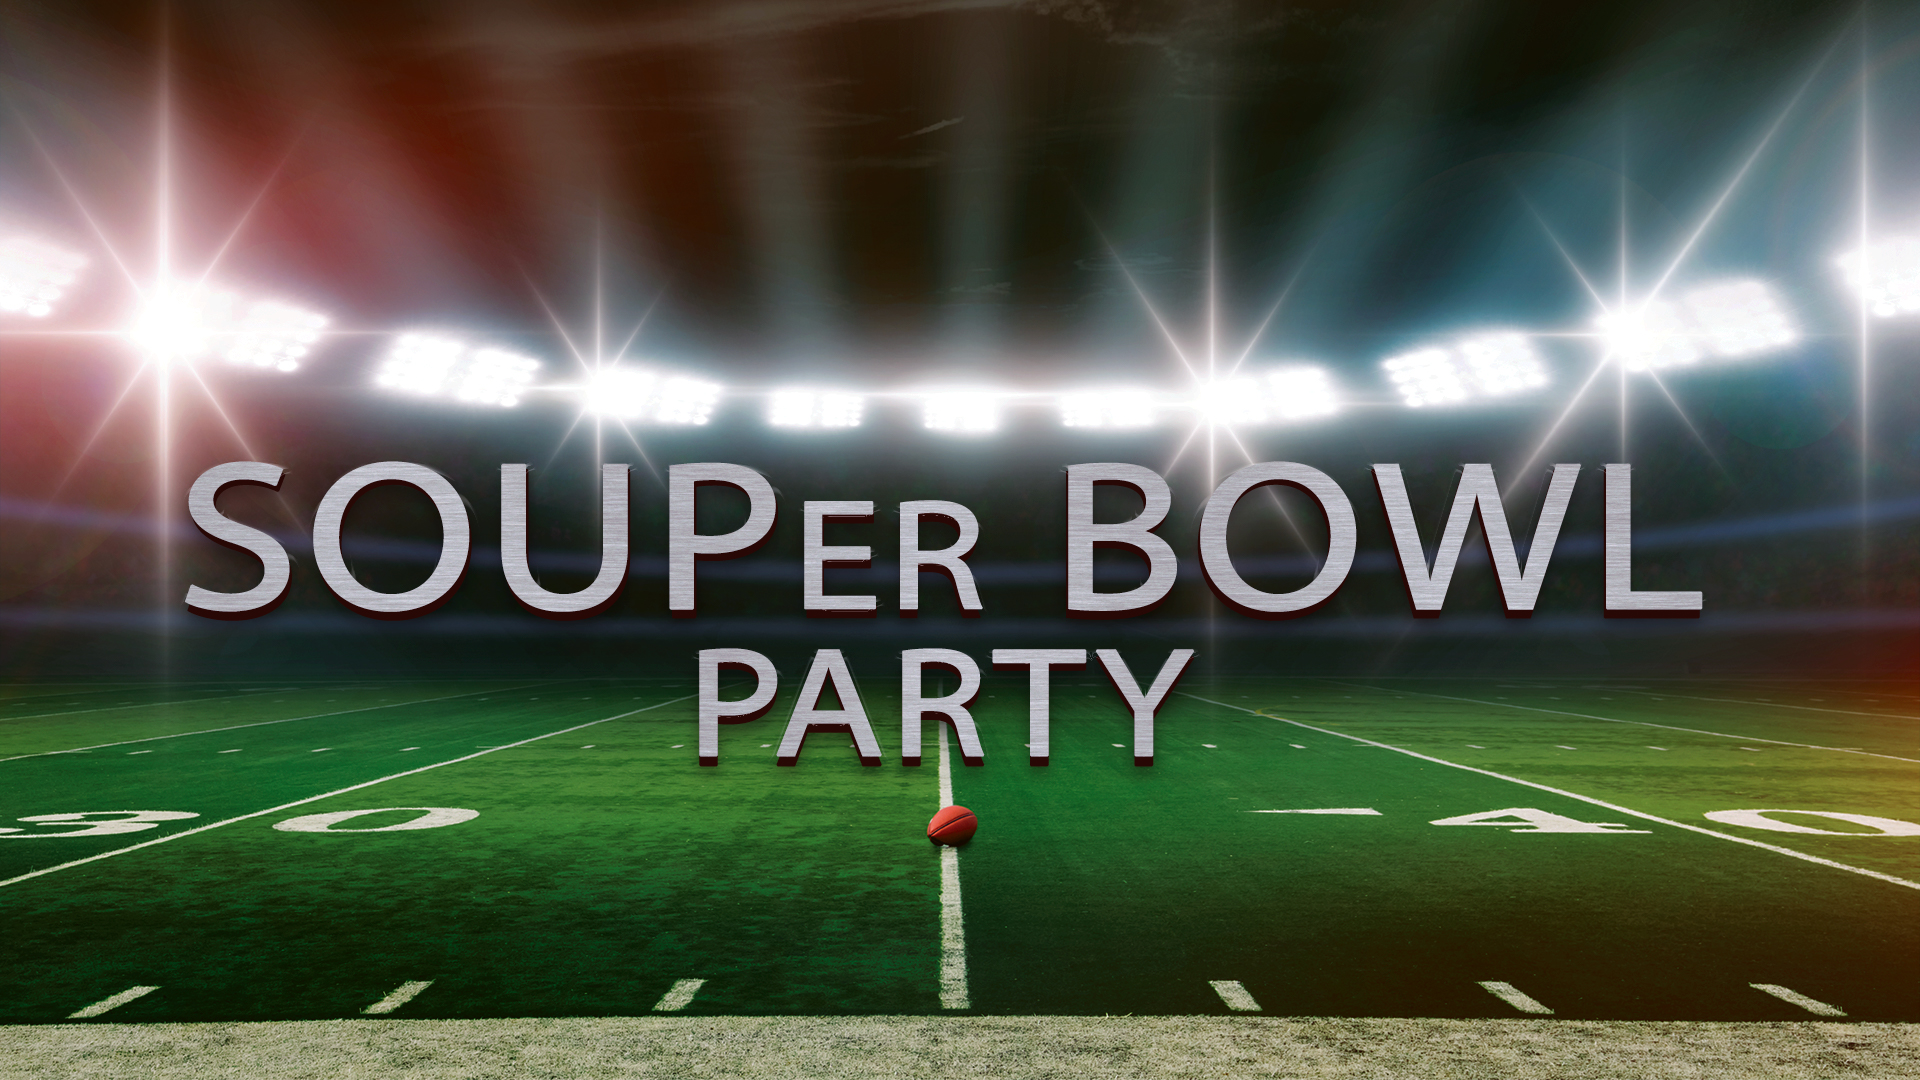 Souper Bowl HD Blank